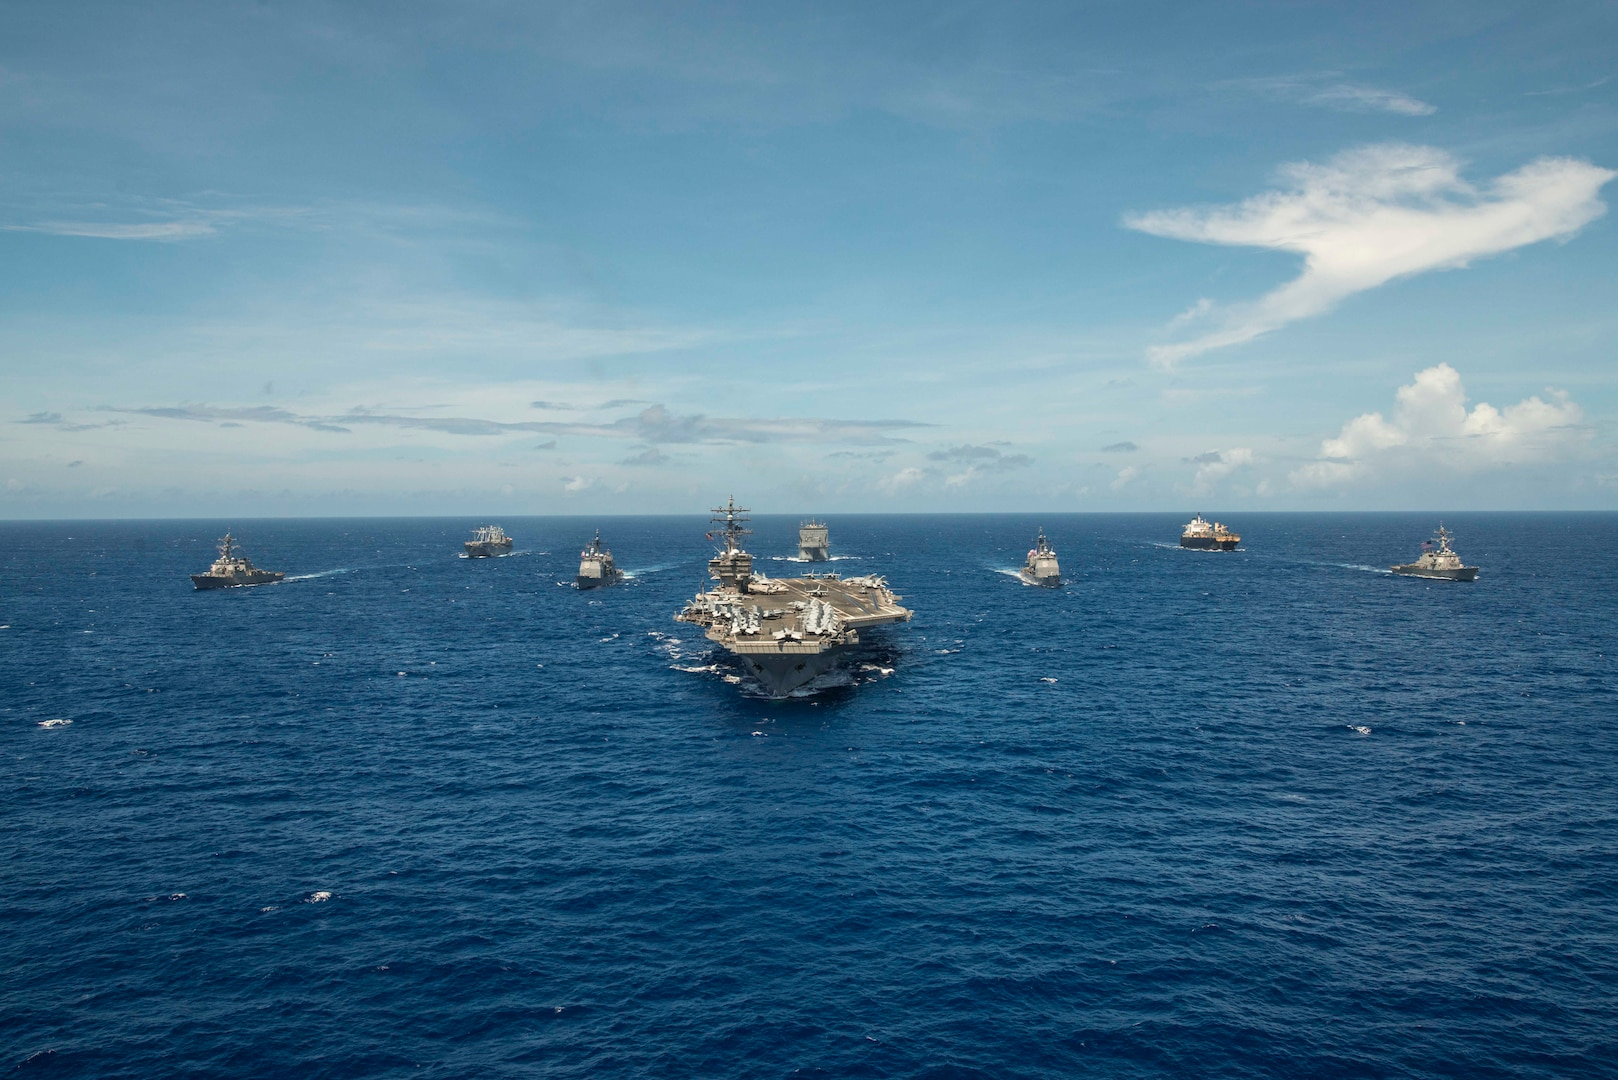 PHILIPPINE SEA (Sept. 17, 2018) The aircraft carrier USS Ronald Reagan (CVN 76) leads the Ronald Reagan Strike group, including the Ticonderoga-class missile cruisers USS Antietam (CG 54) and USS Chancellorsville (CG 62) and the Arleigh Burke-class guided-missile destroyers USS Benfold (DDG 65) and USS Milius (DDG 69), during exercise Valiant Shield 2018.